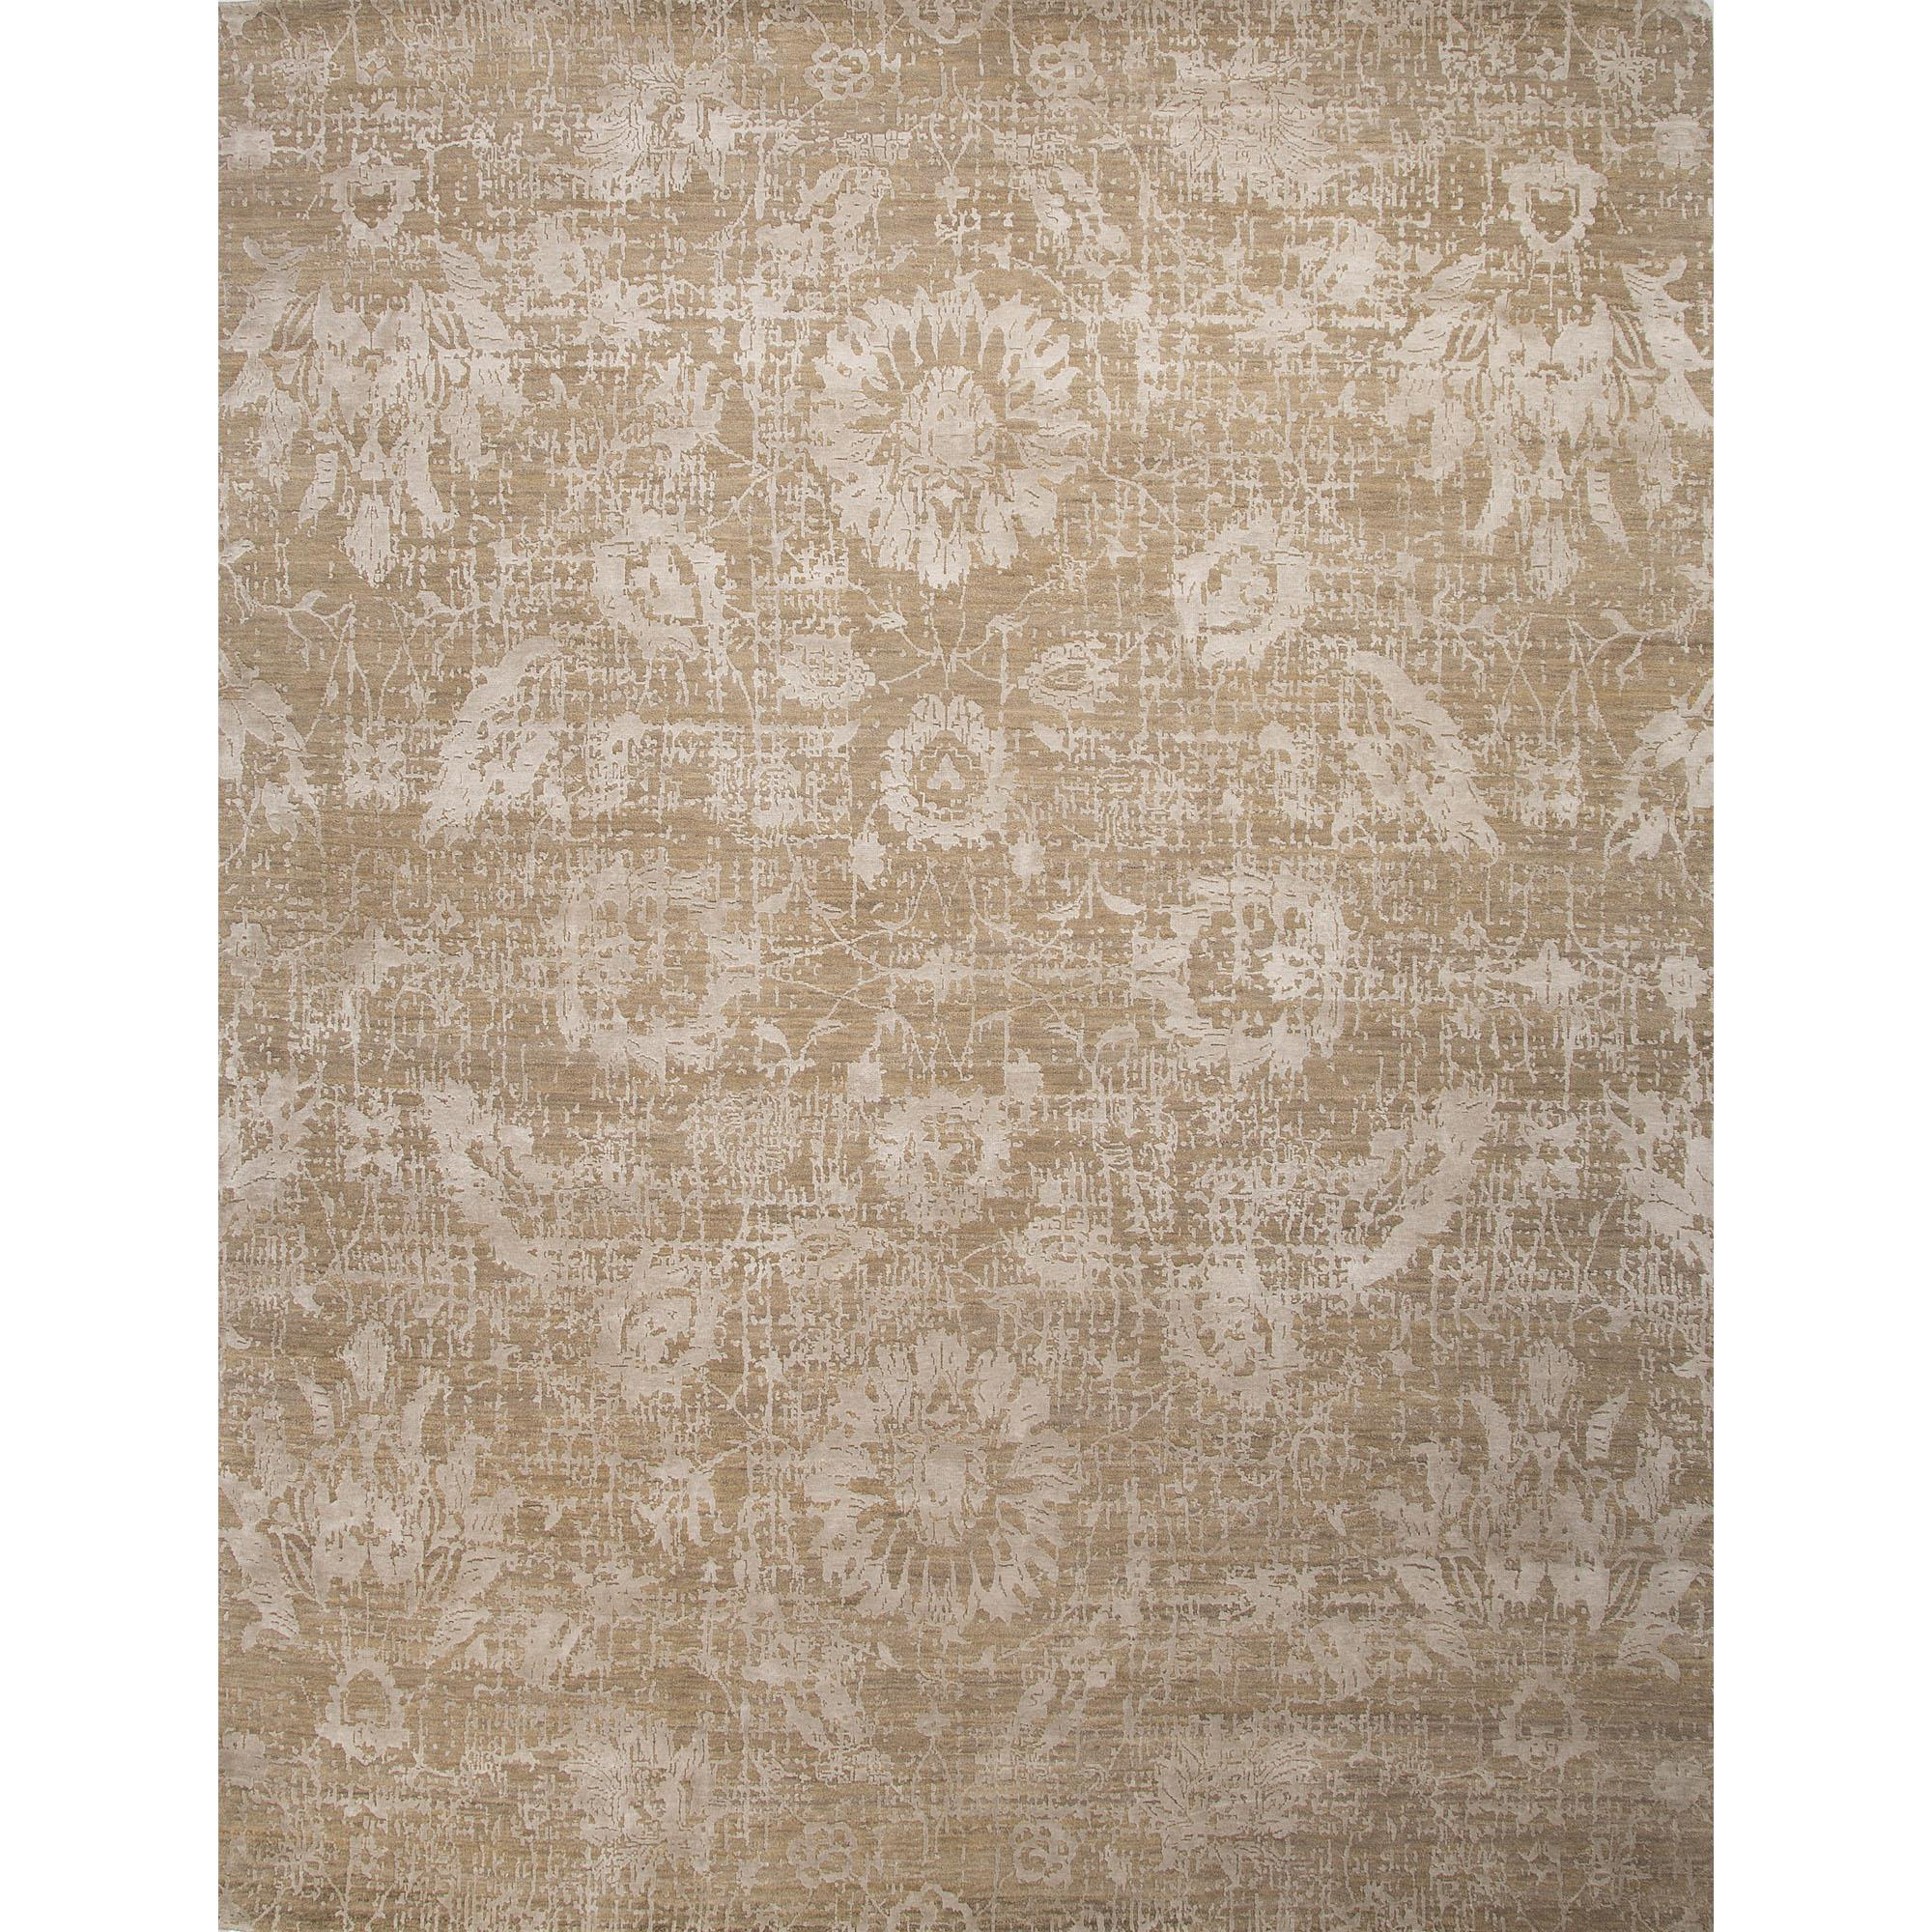 JAIPUR Rugs Chaos Theory By Kavi 5.6 x 8 Rug - Item Number: RUG117030